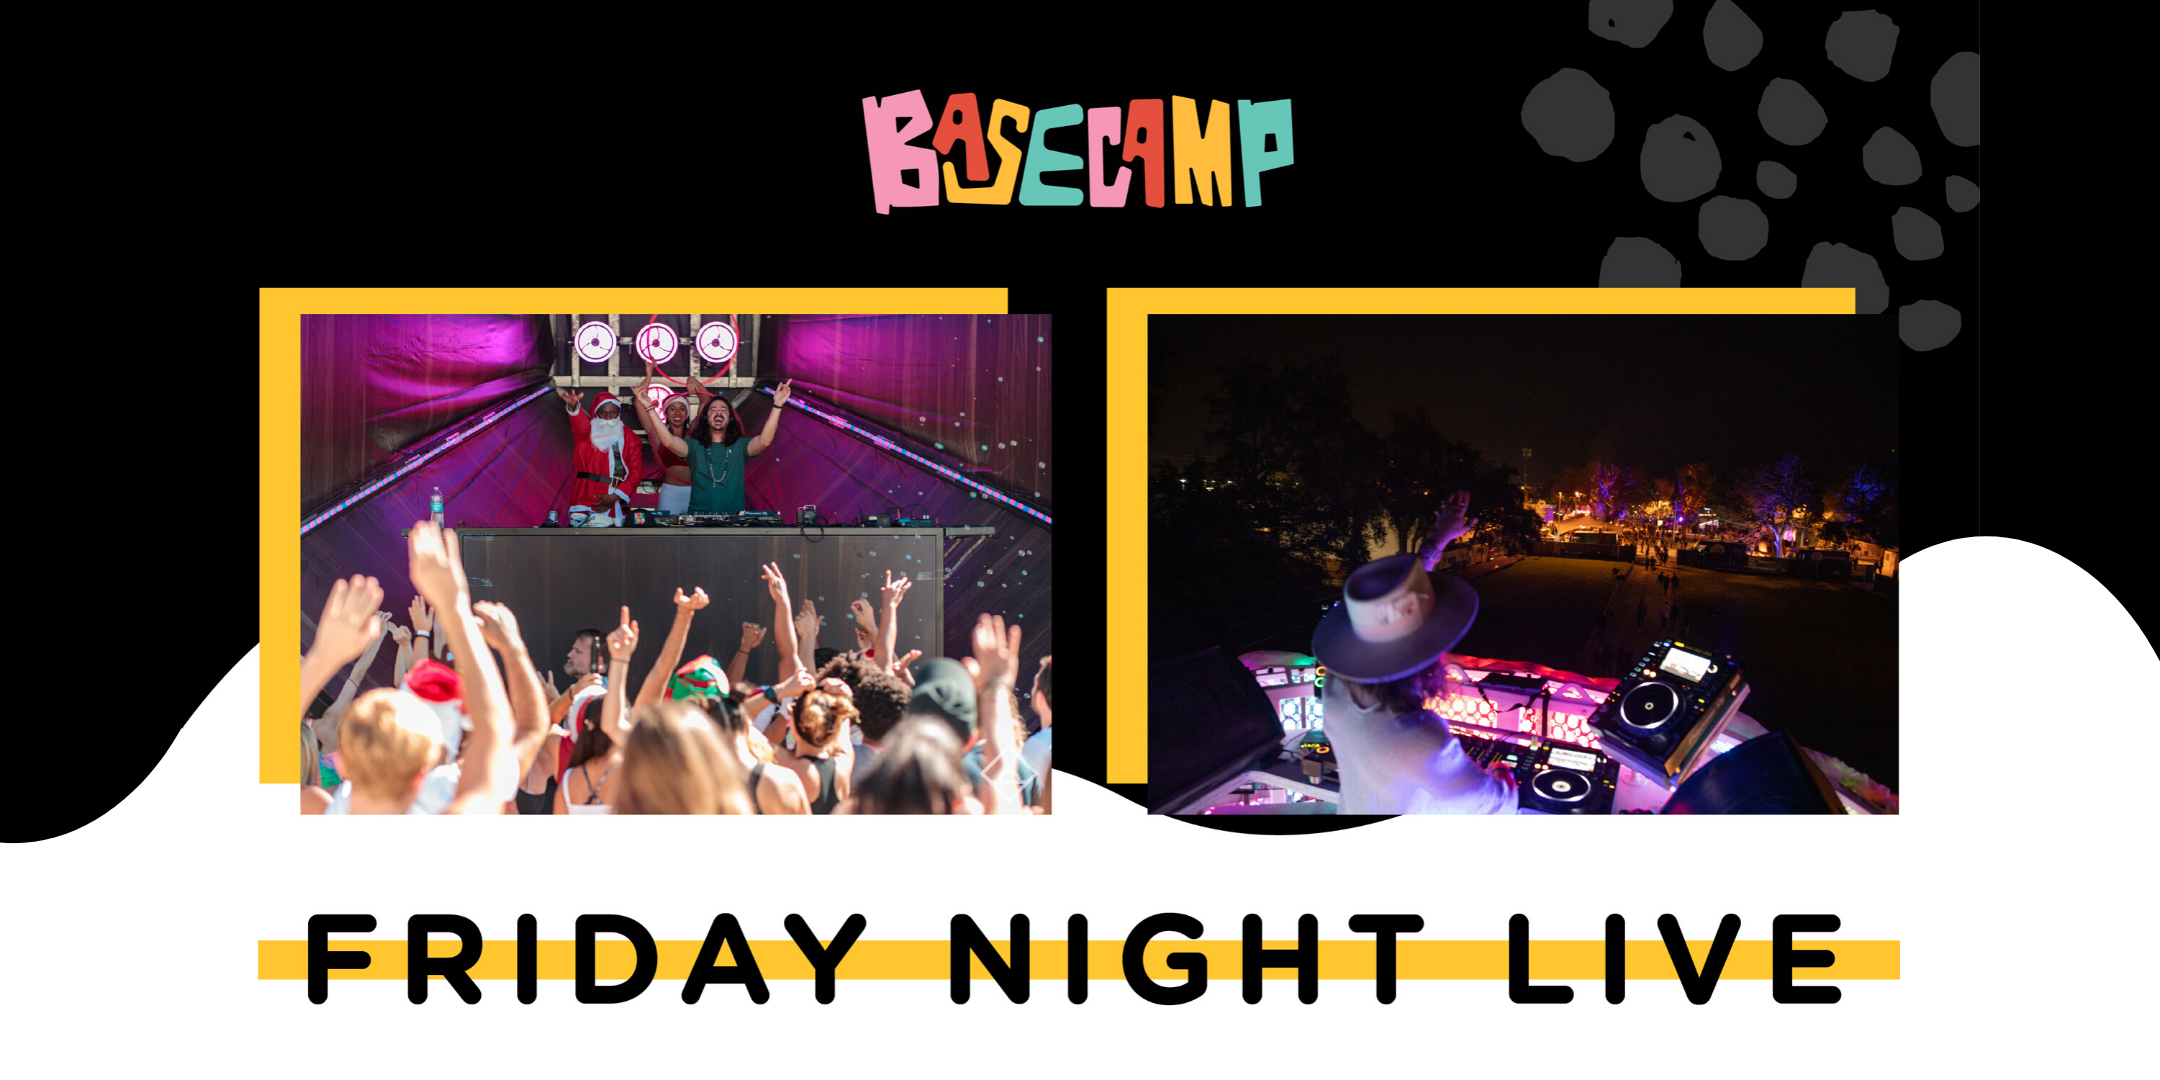 FEB  7, FRIDAY NIGHT LIVE @ BaseCamp